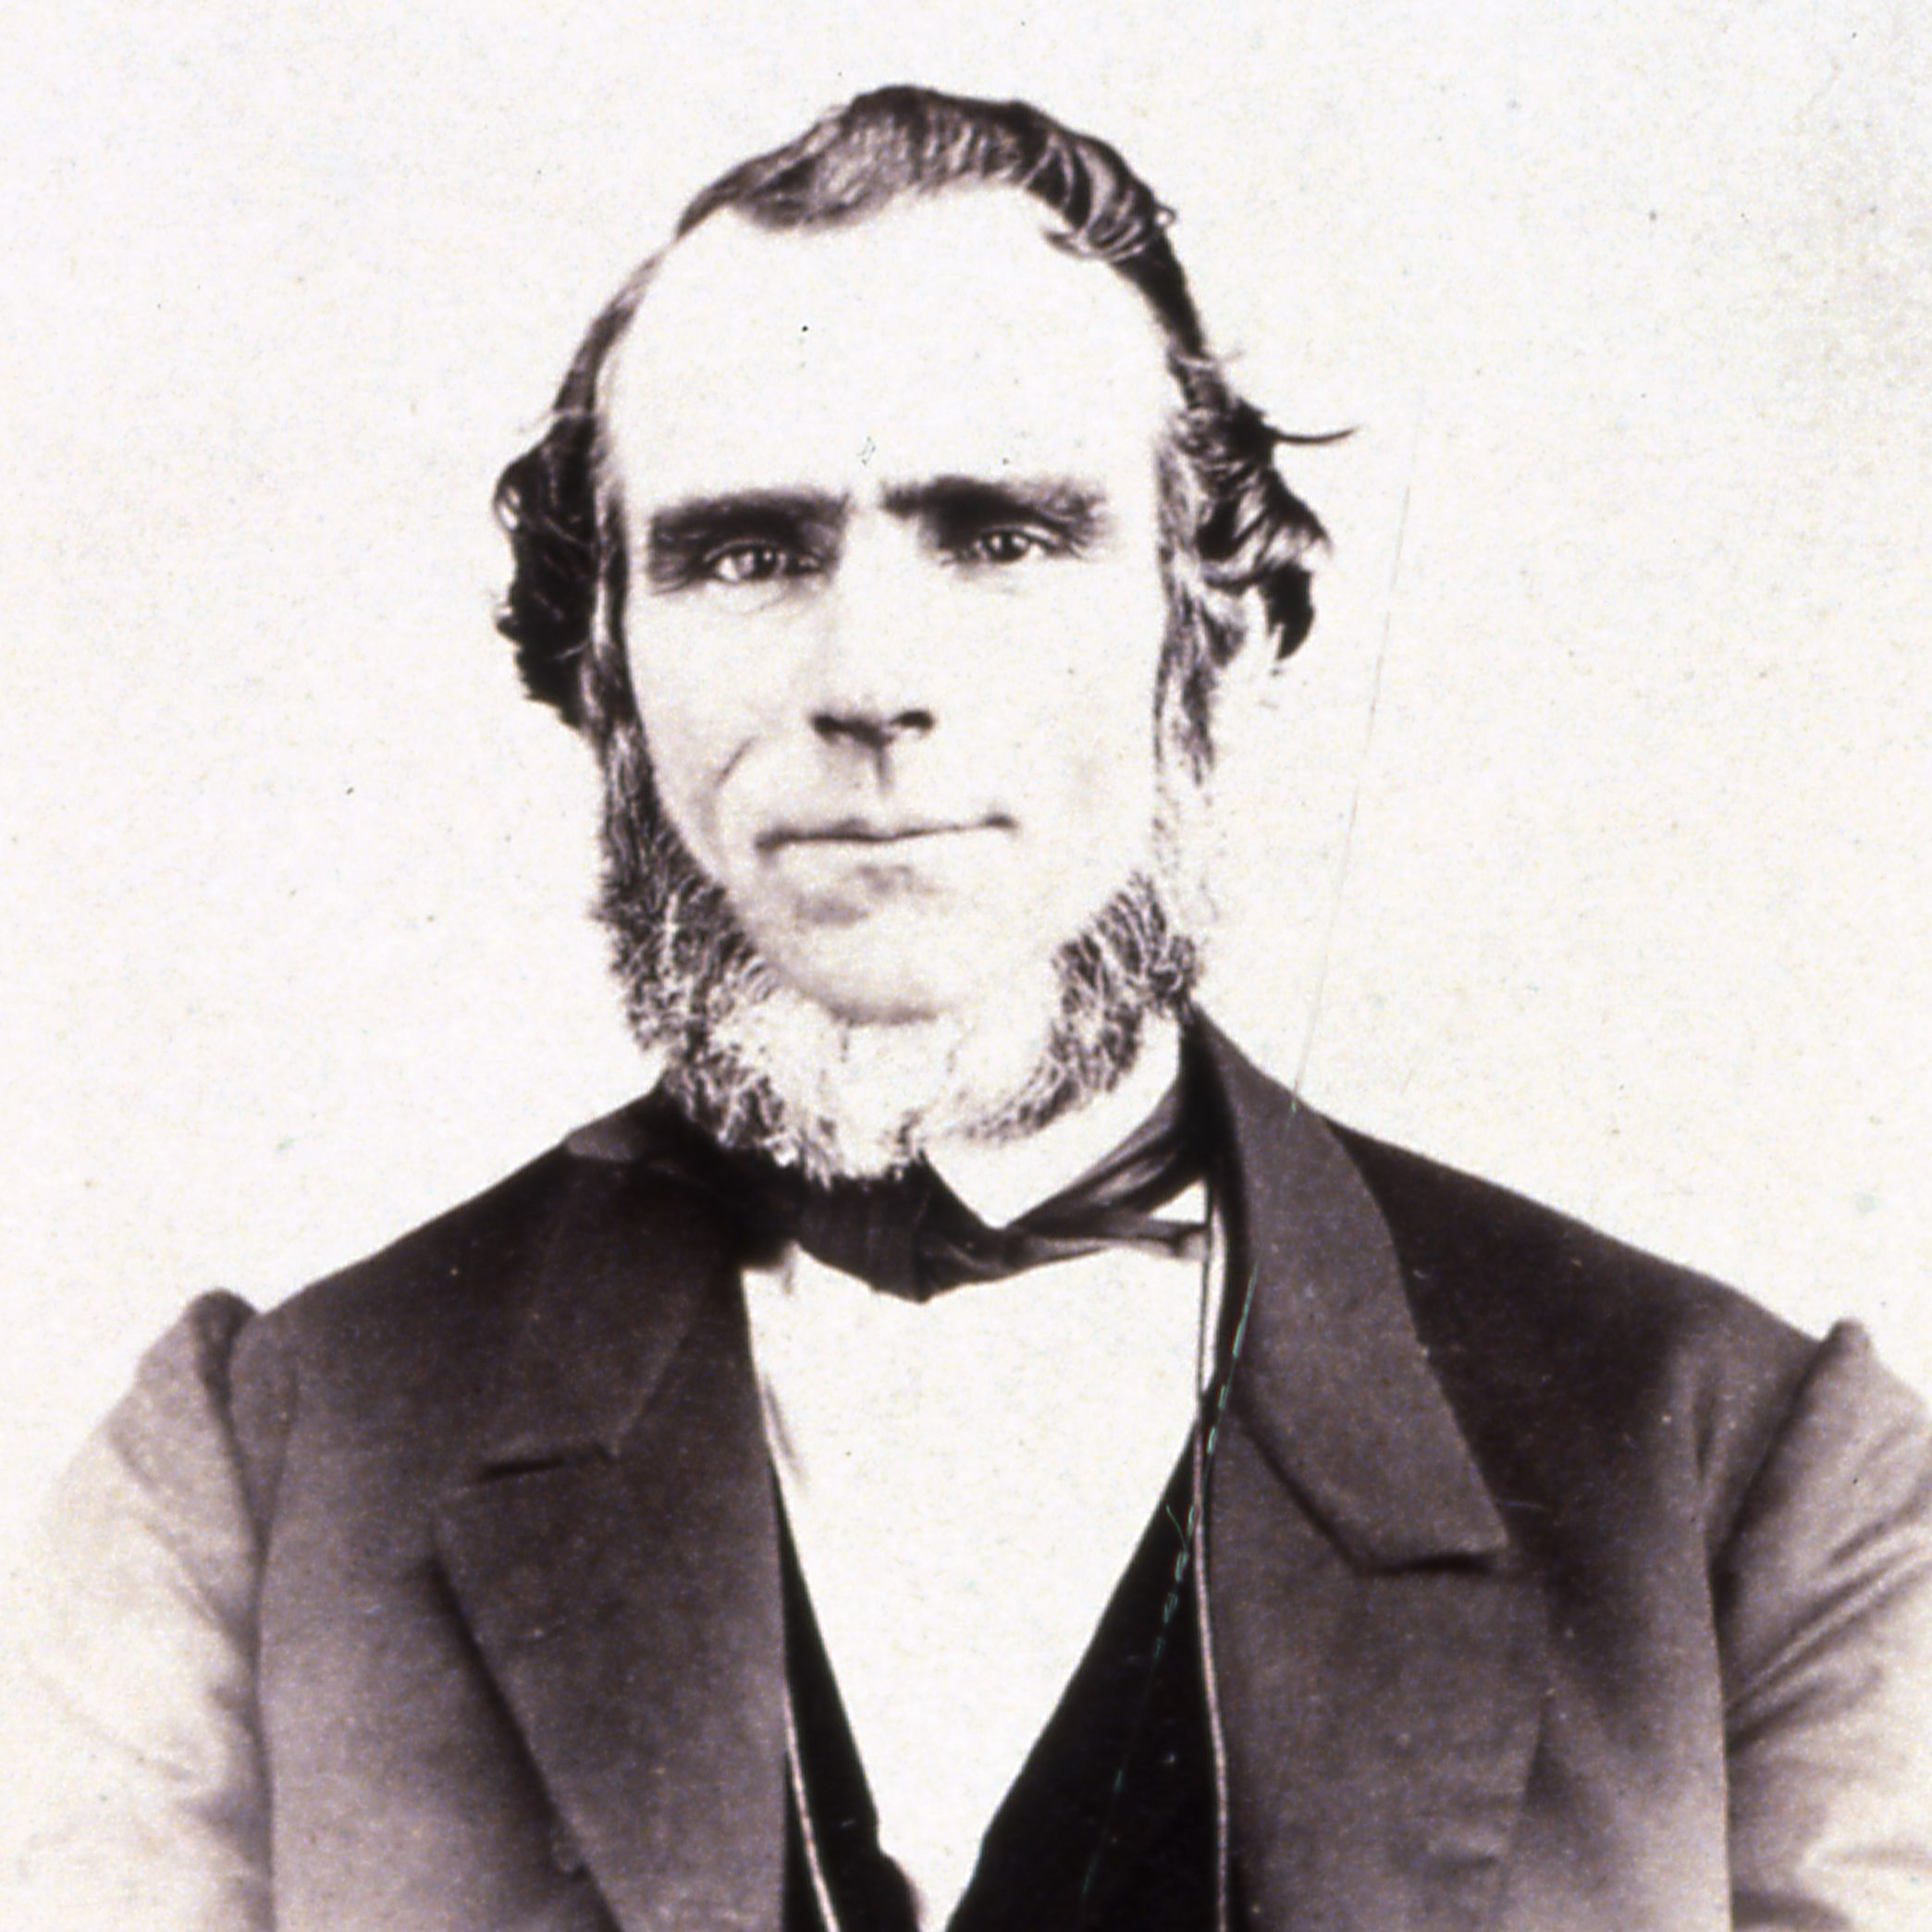 Abraham O. Smoot in the 1860s